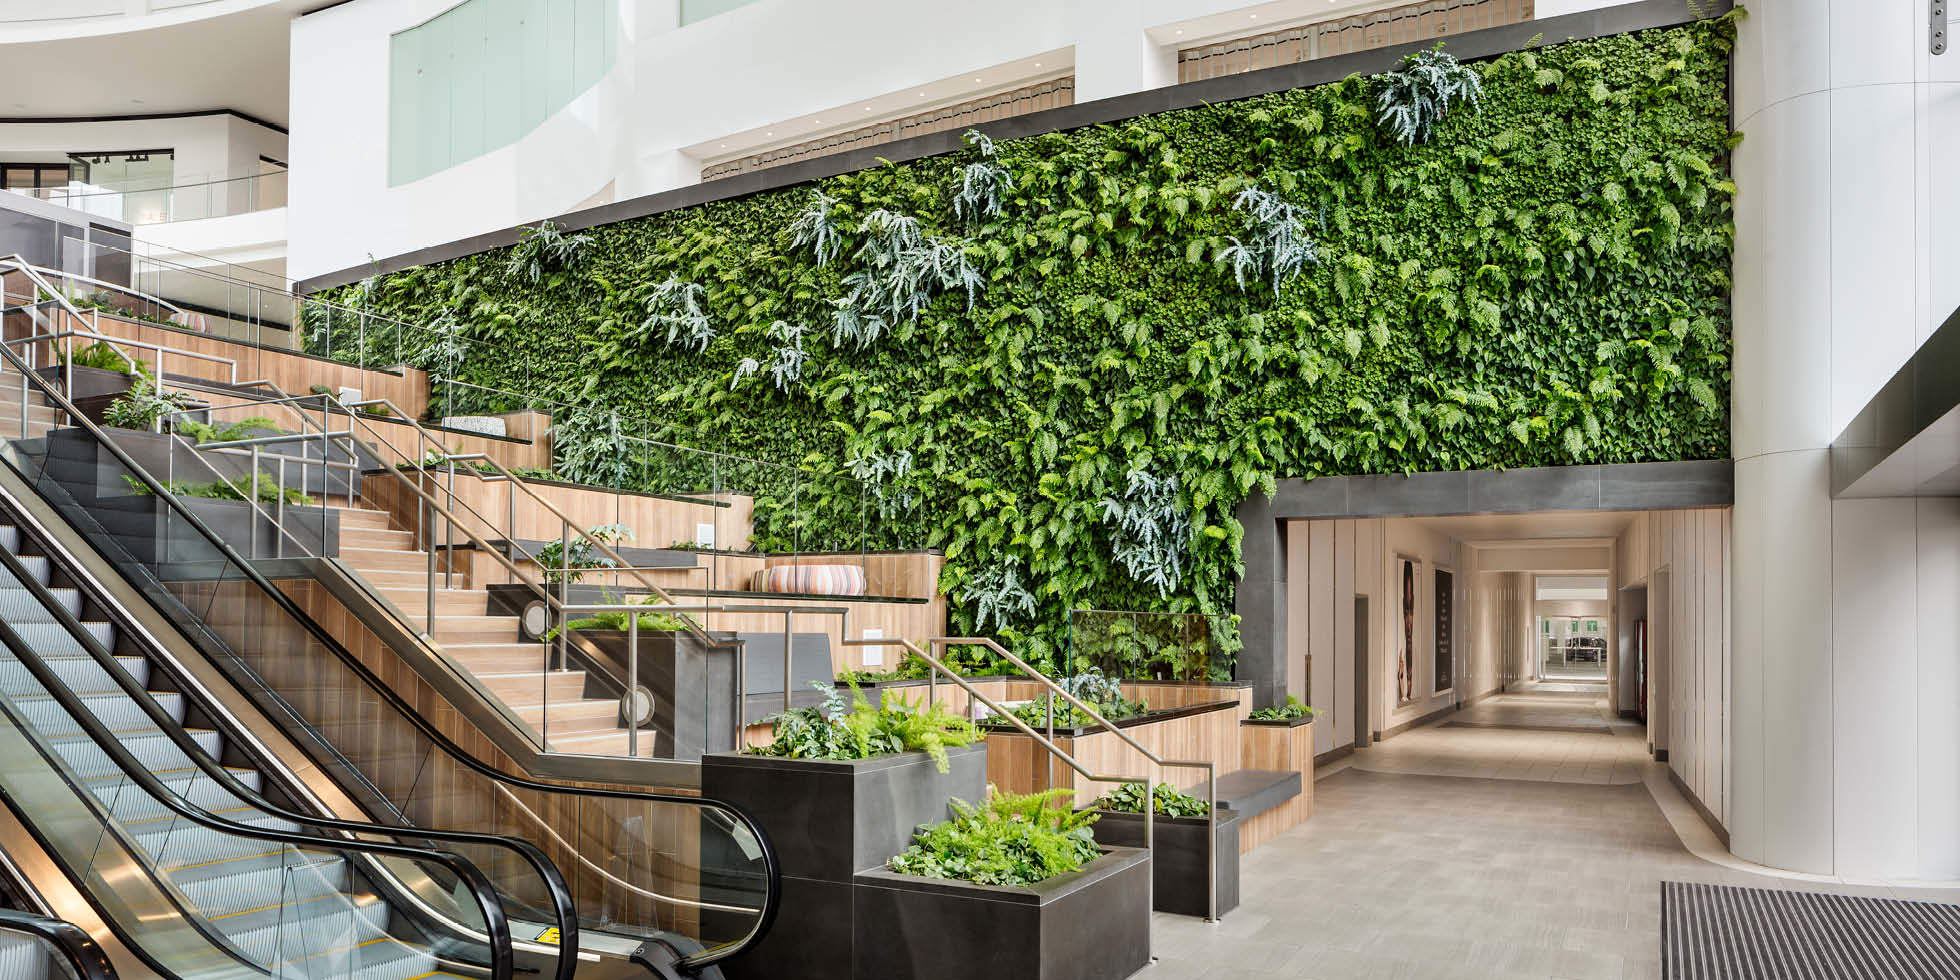 Del Amo Fashion Center Living Wall by Habitat Horticulture - View 4